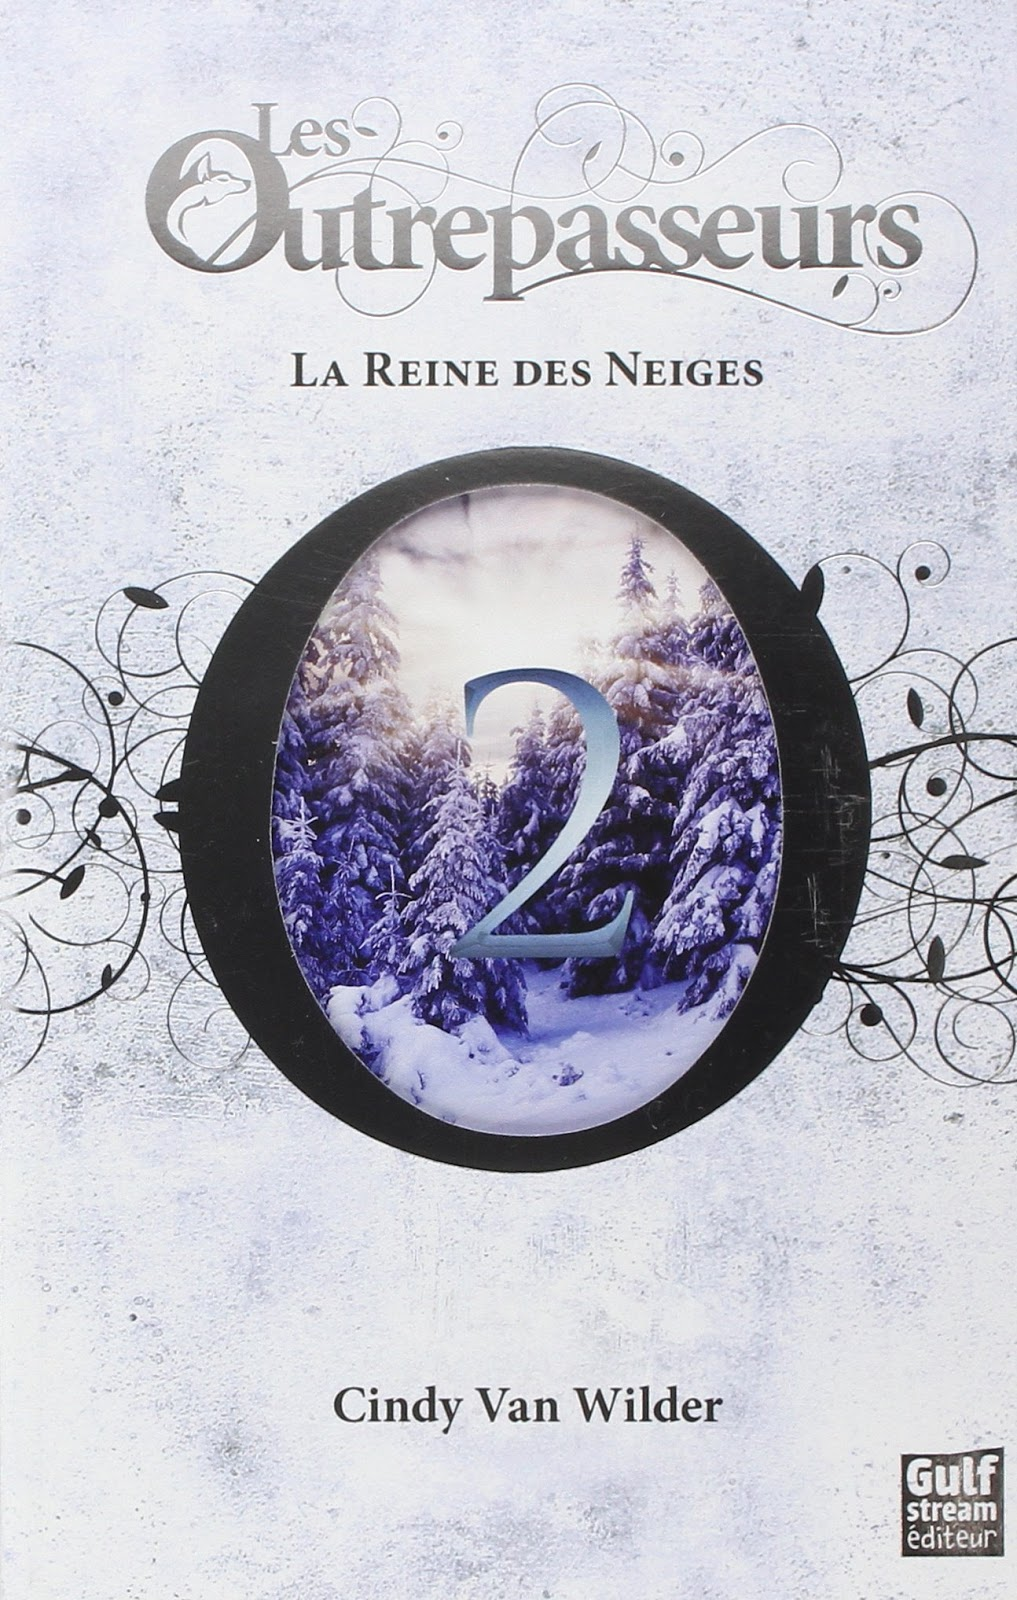 les lectures d 39 alice la reine des neiges les outrepasseurs 2 cindy van wilder. Black Bedroom Furniture Sets. Home Design Ideas